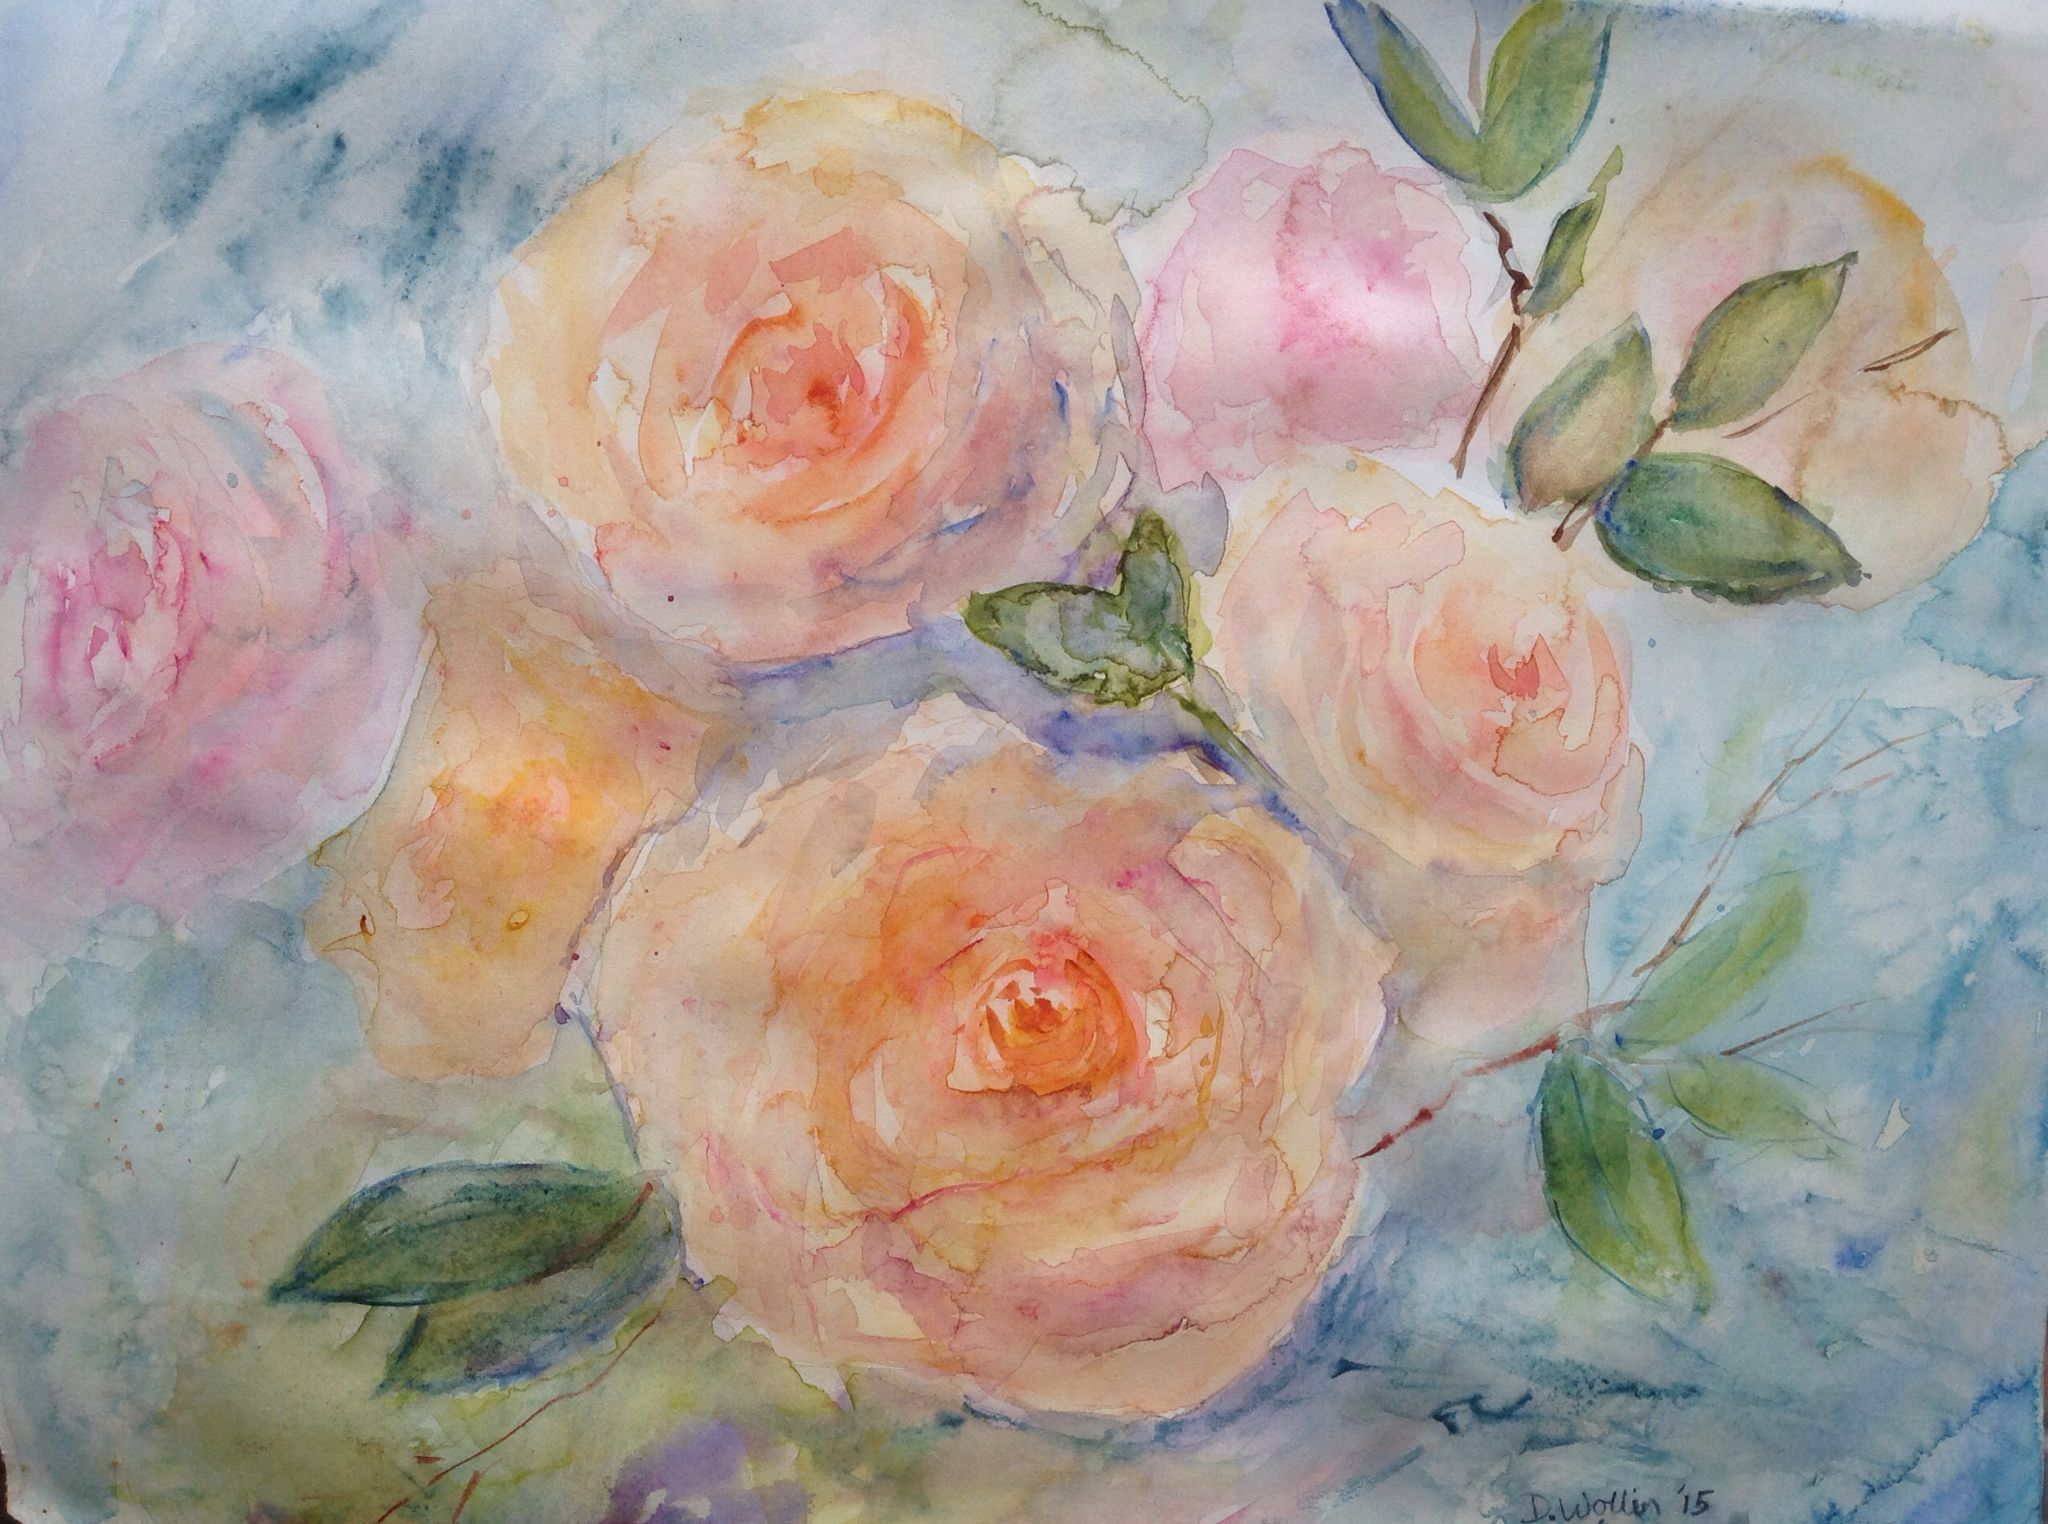 Watercolour on hot pressed paper